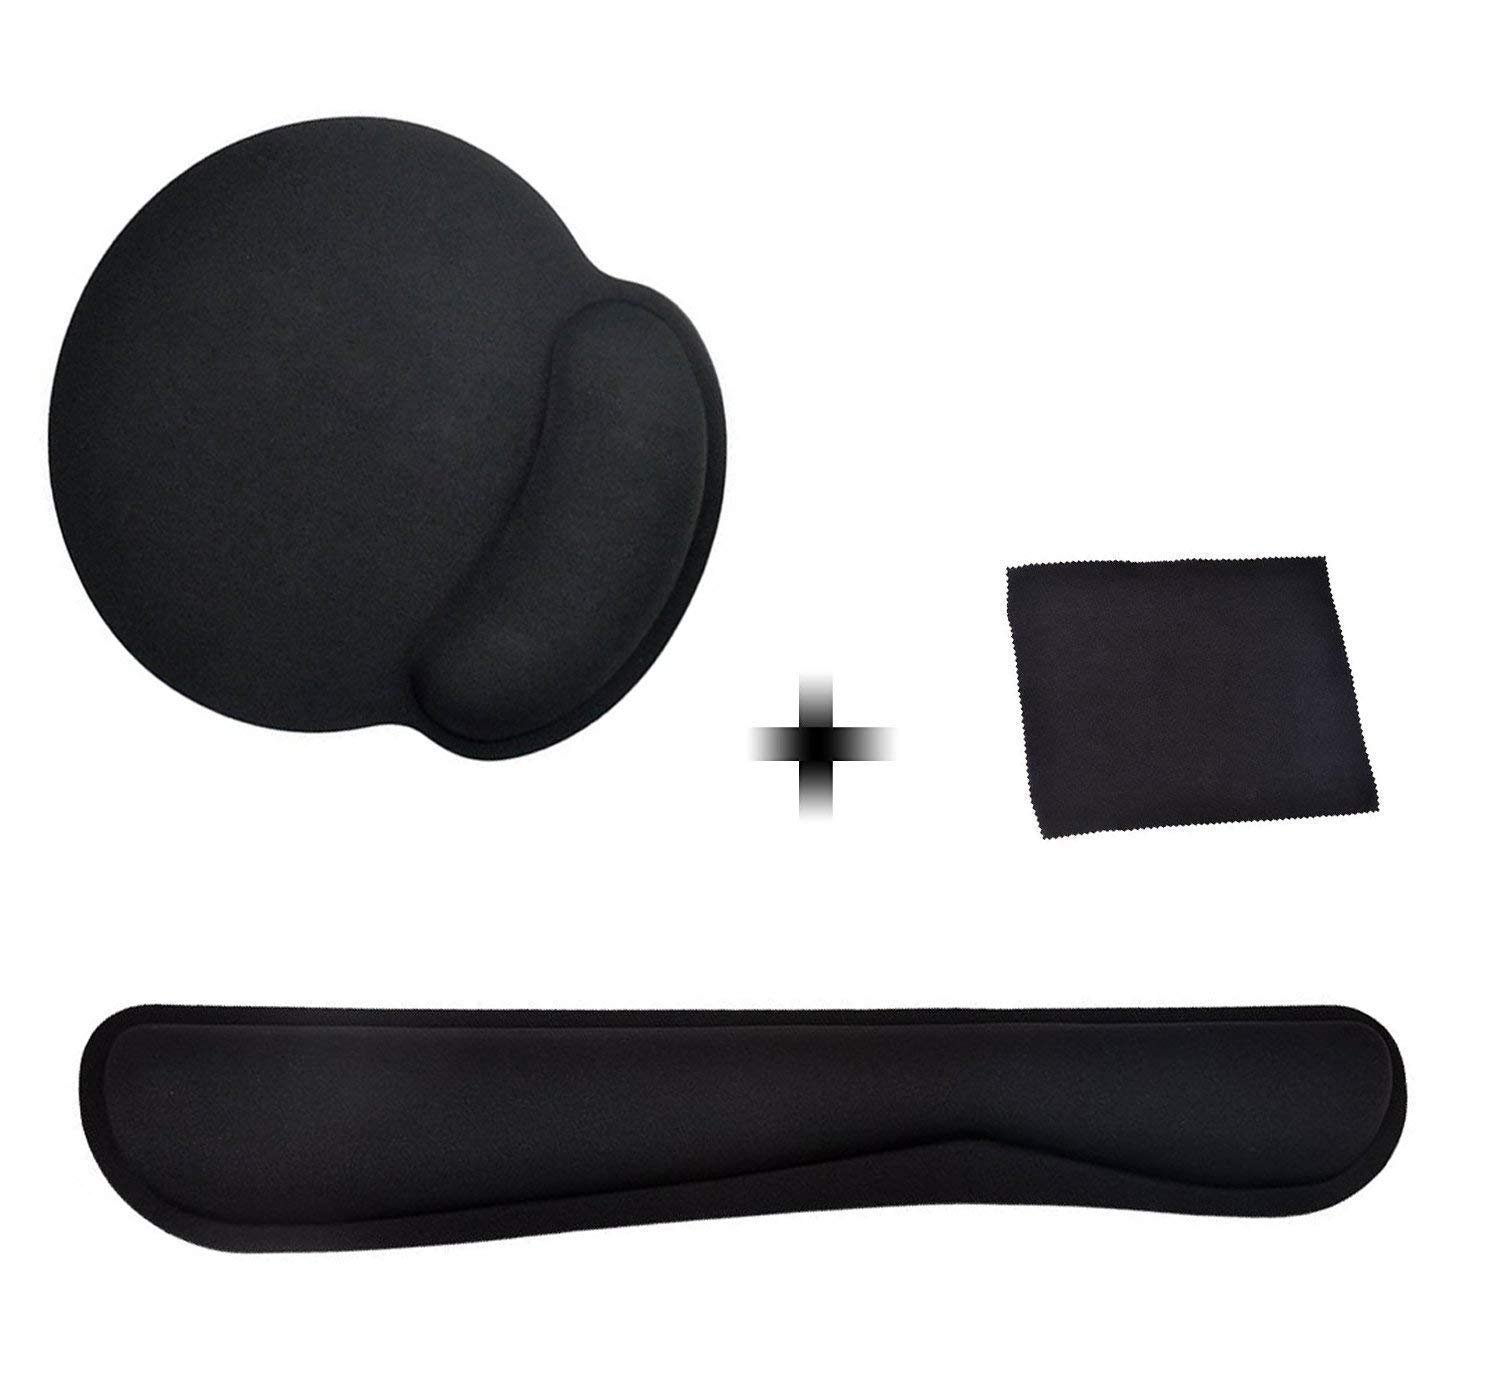 Ledinus Memory Foam Non Slip Mouse Pad and Keyboard Wrist Rest Support For Office, Computer, Laptop & Mac with Free Cleaning Cloth - Durable & Comfortable & Lightweight For Easy Typing & Pain Relief